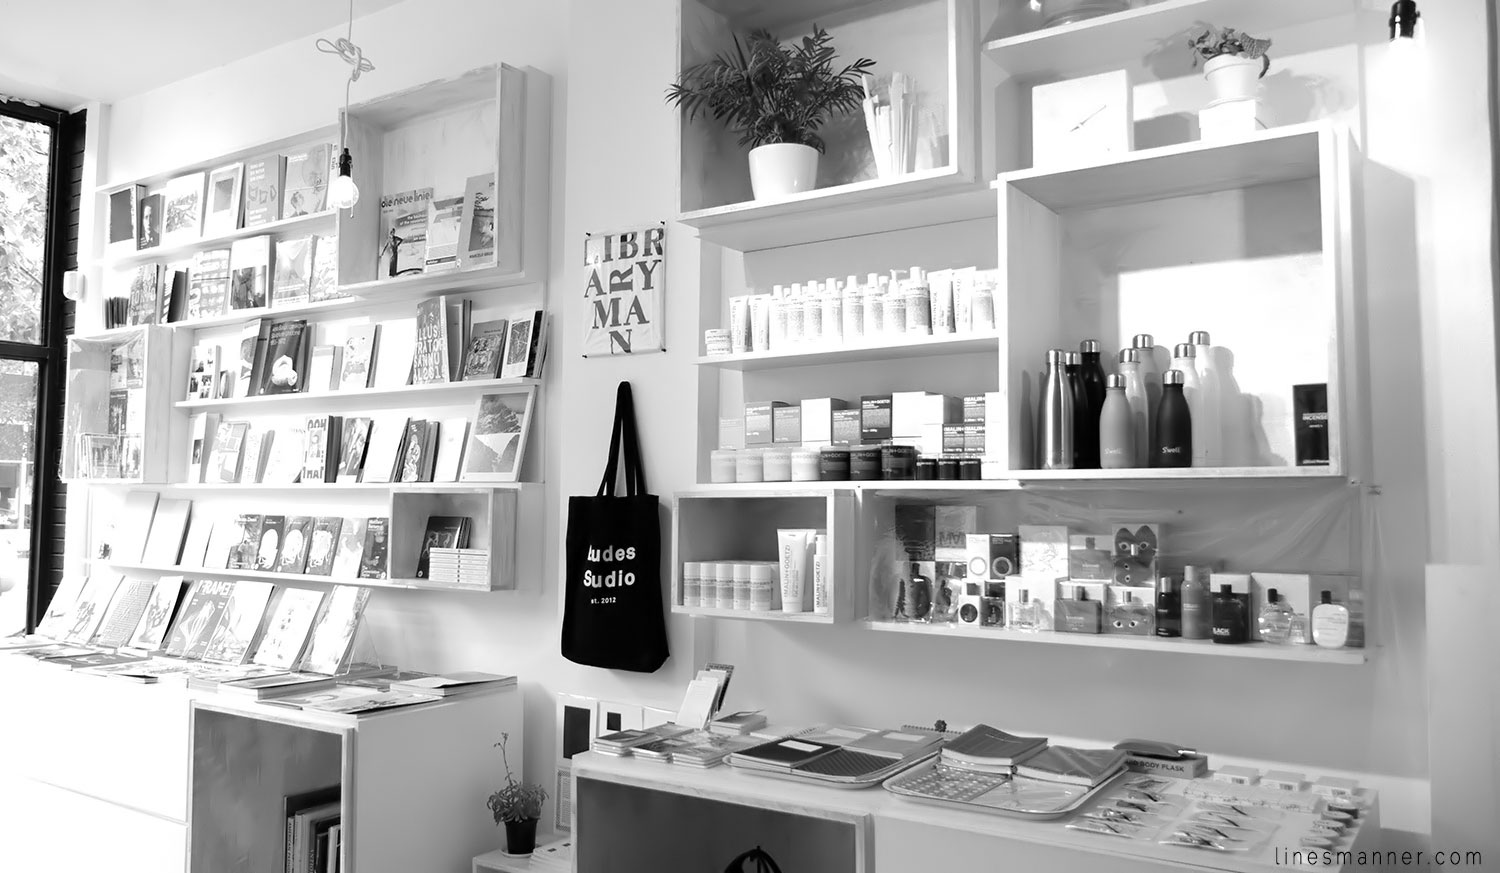 Lines-Manner-Concept-Boutique-Store-Minimal-Trend-Essentials-Basics-Staples-Ibiki-Montreal-Canada-Art-Contemporary-Artistic-Details-Monochrome-Black_and_White-13